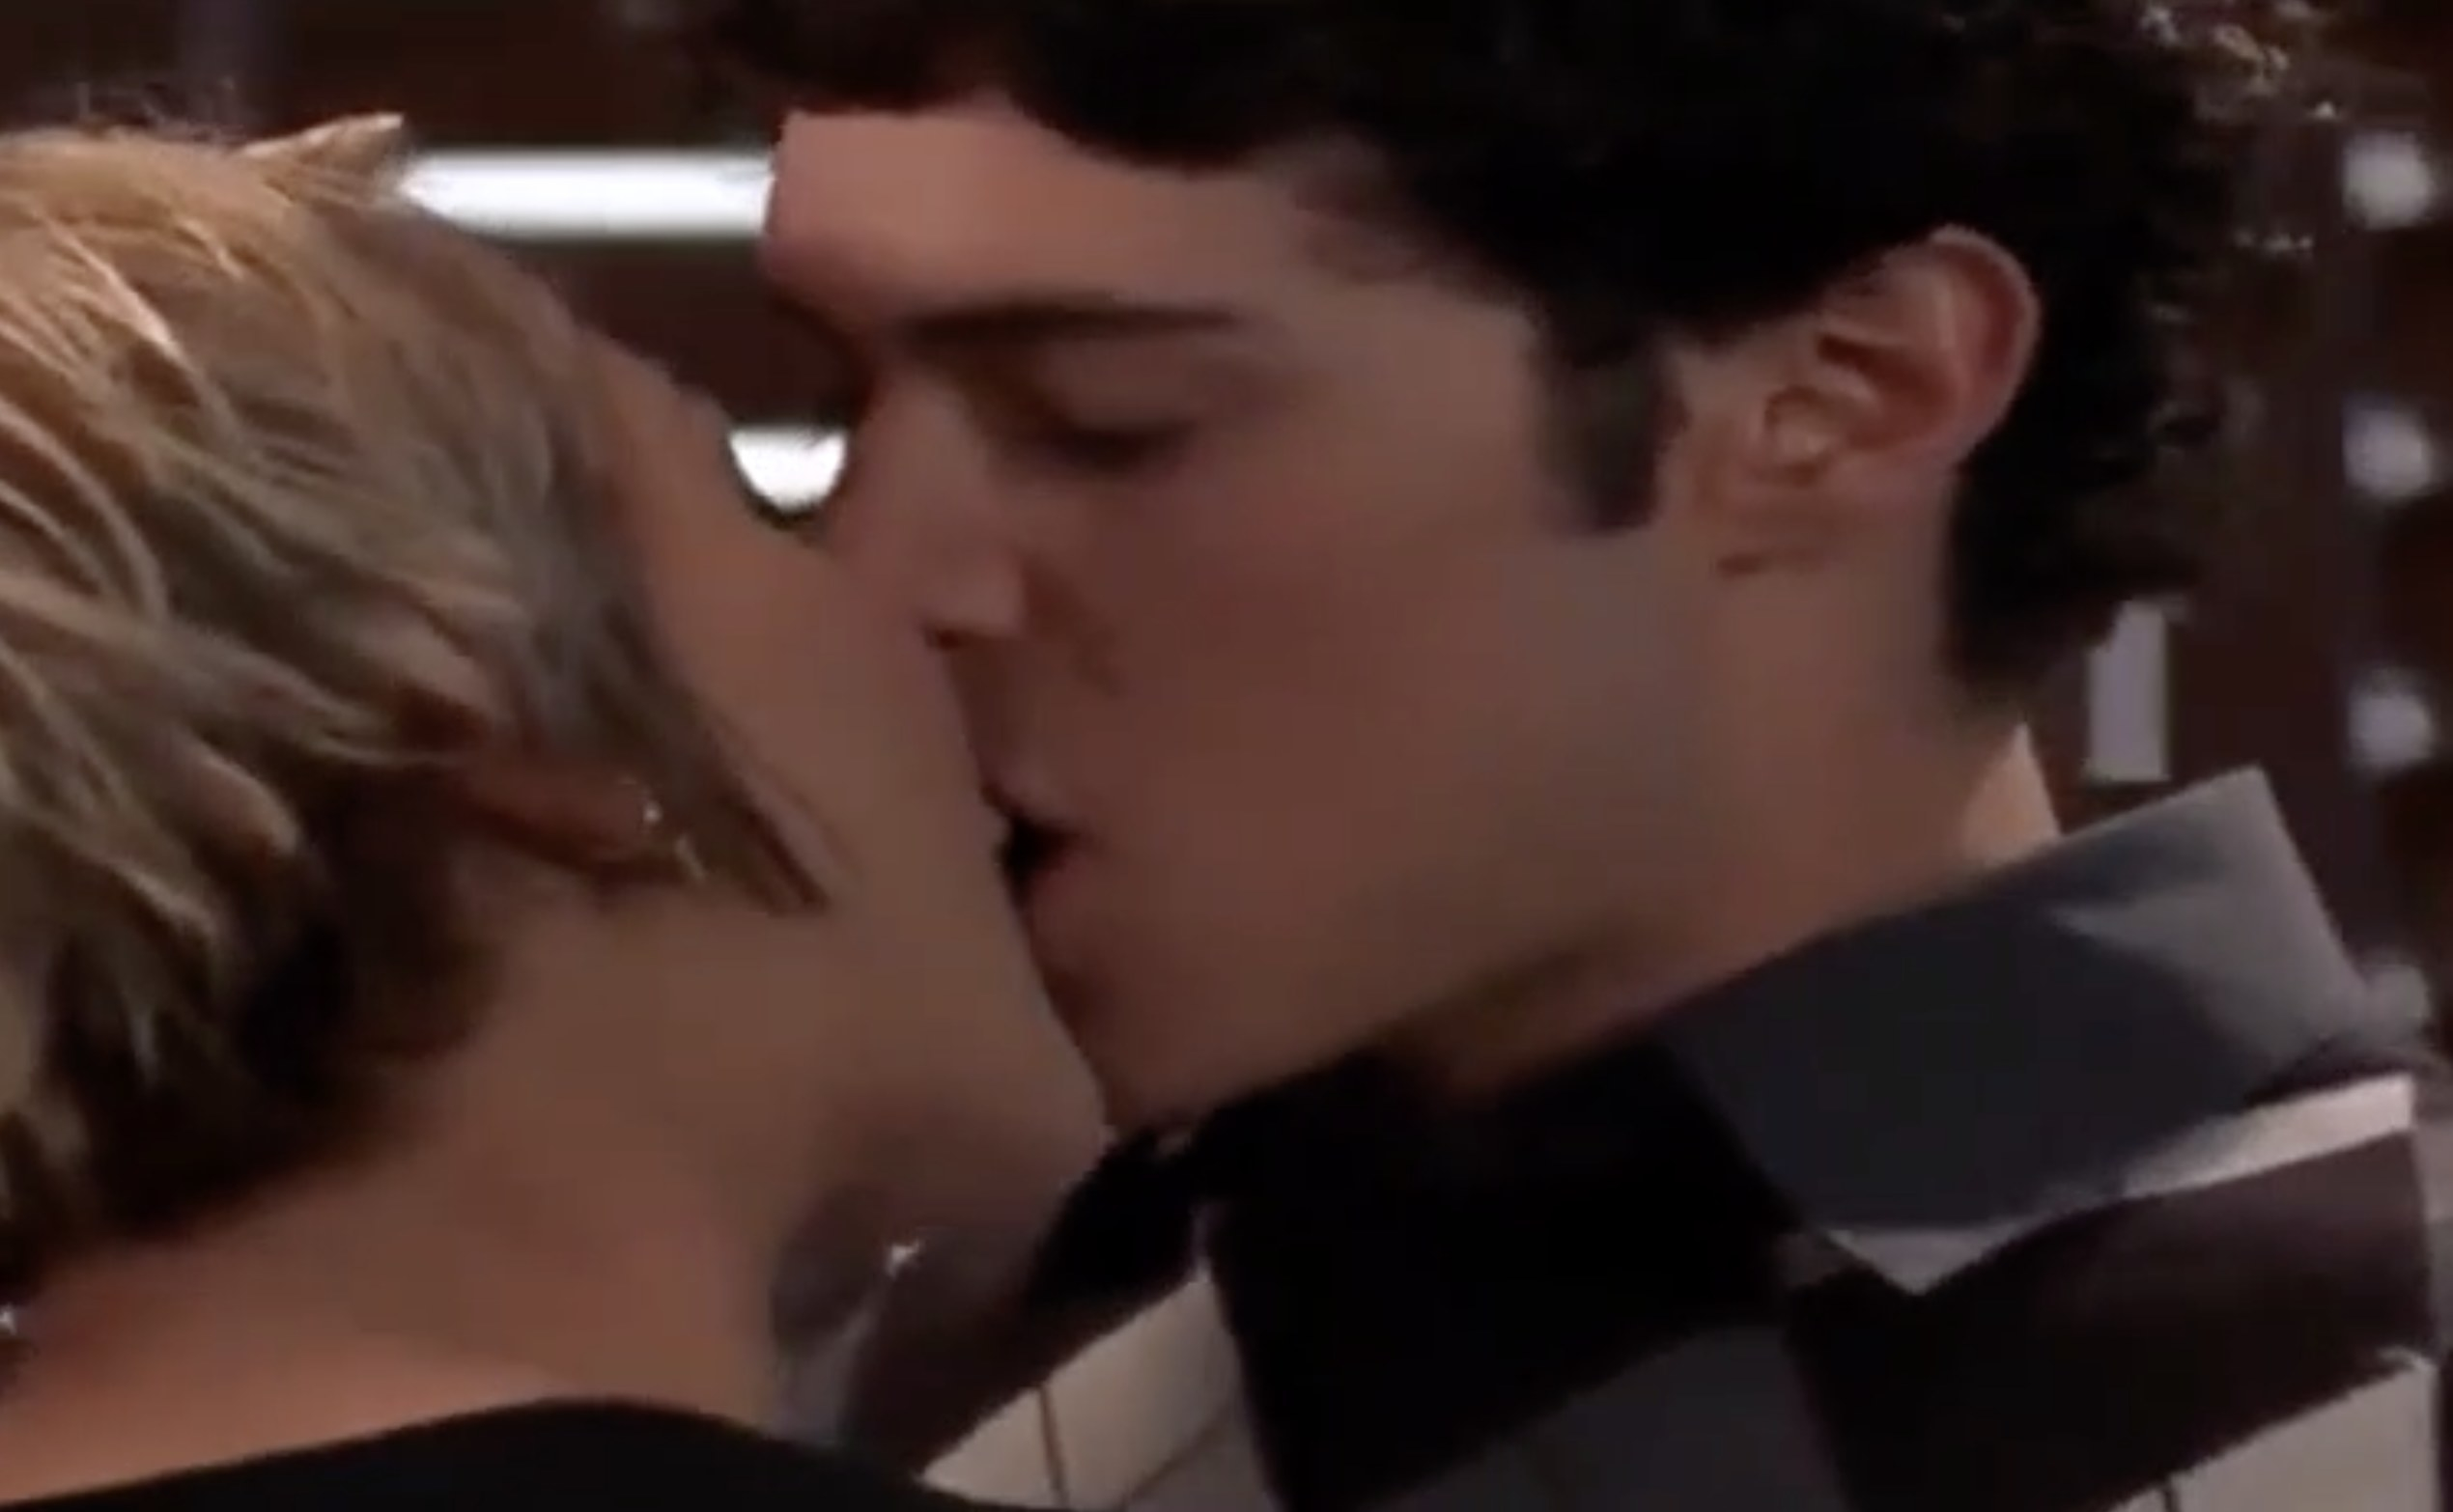 Samaire and Adam's characters passionately kiss